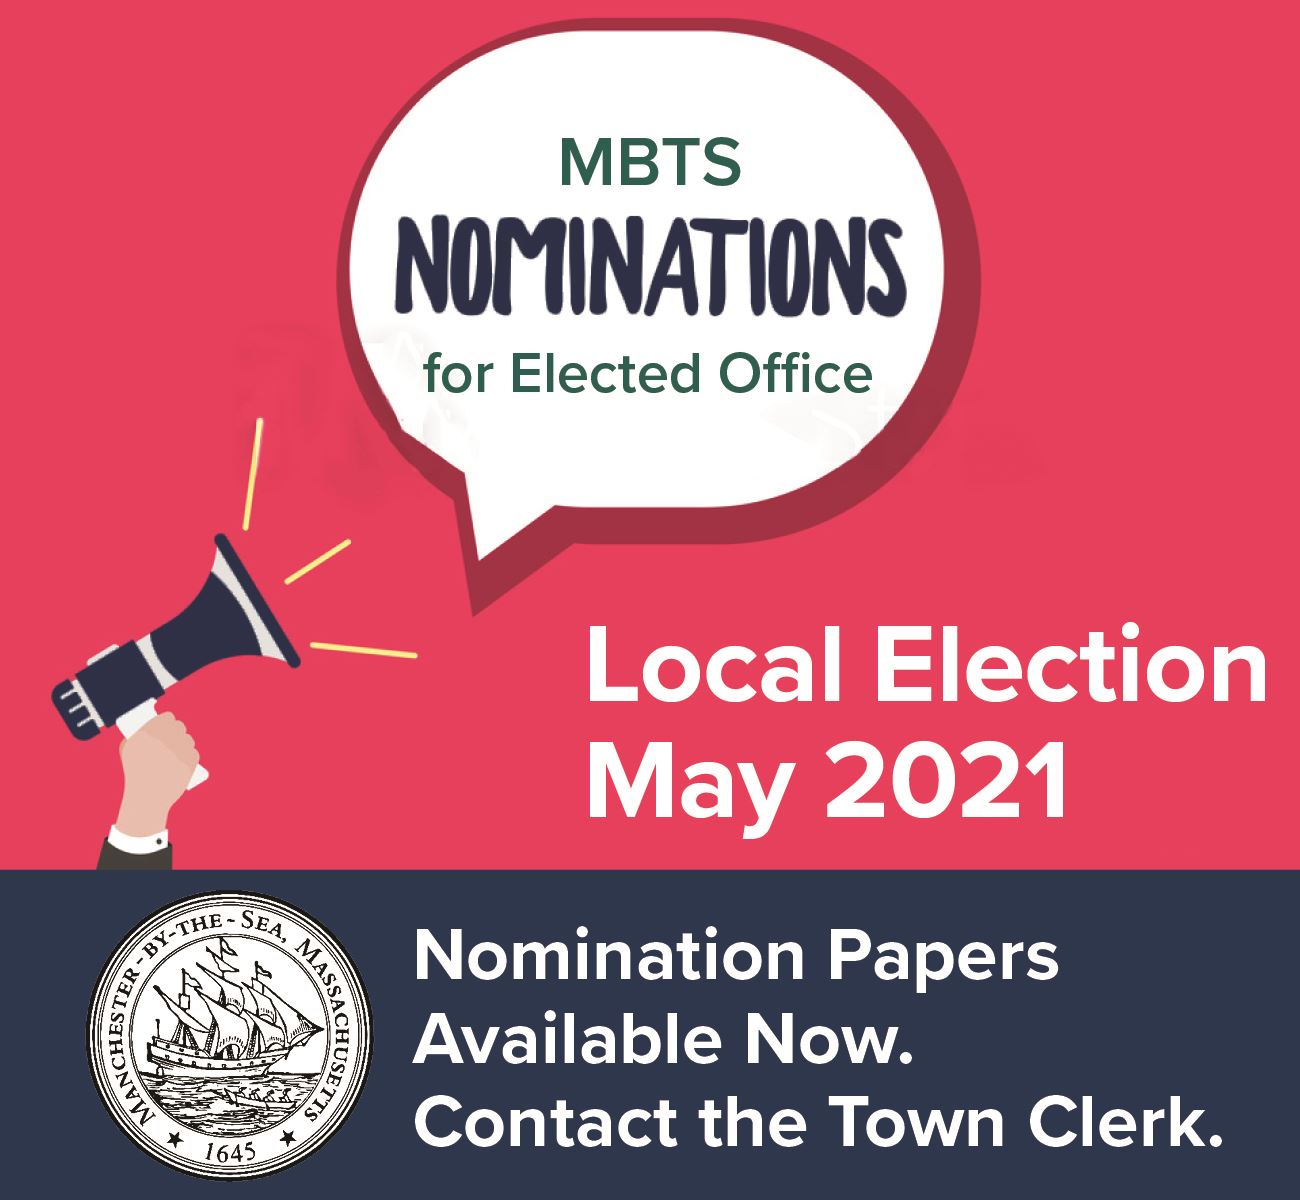 2021 Nomination papers